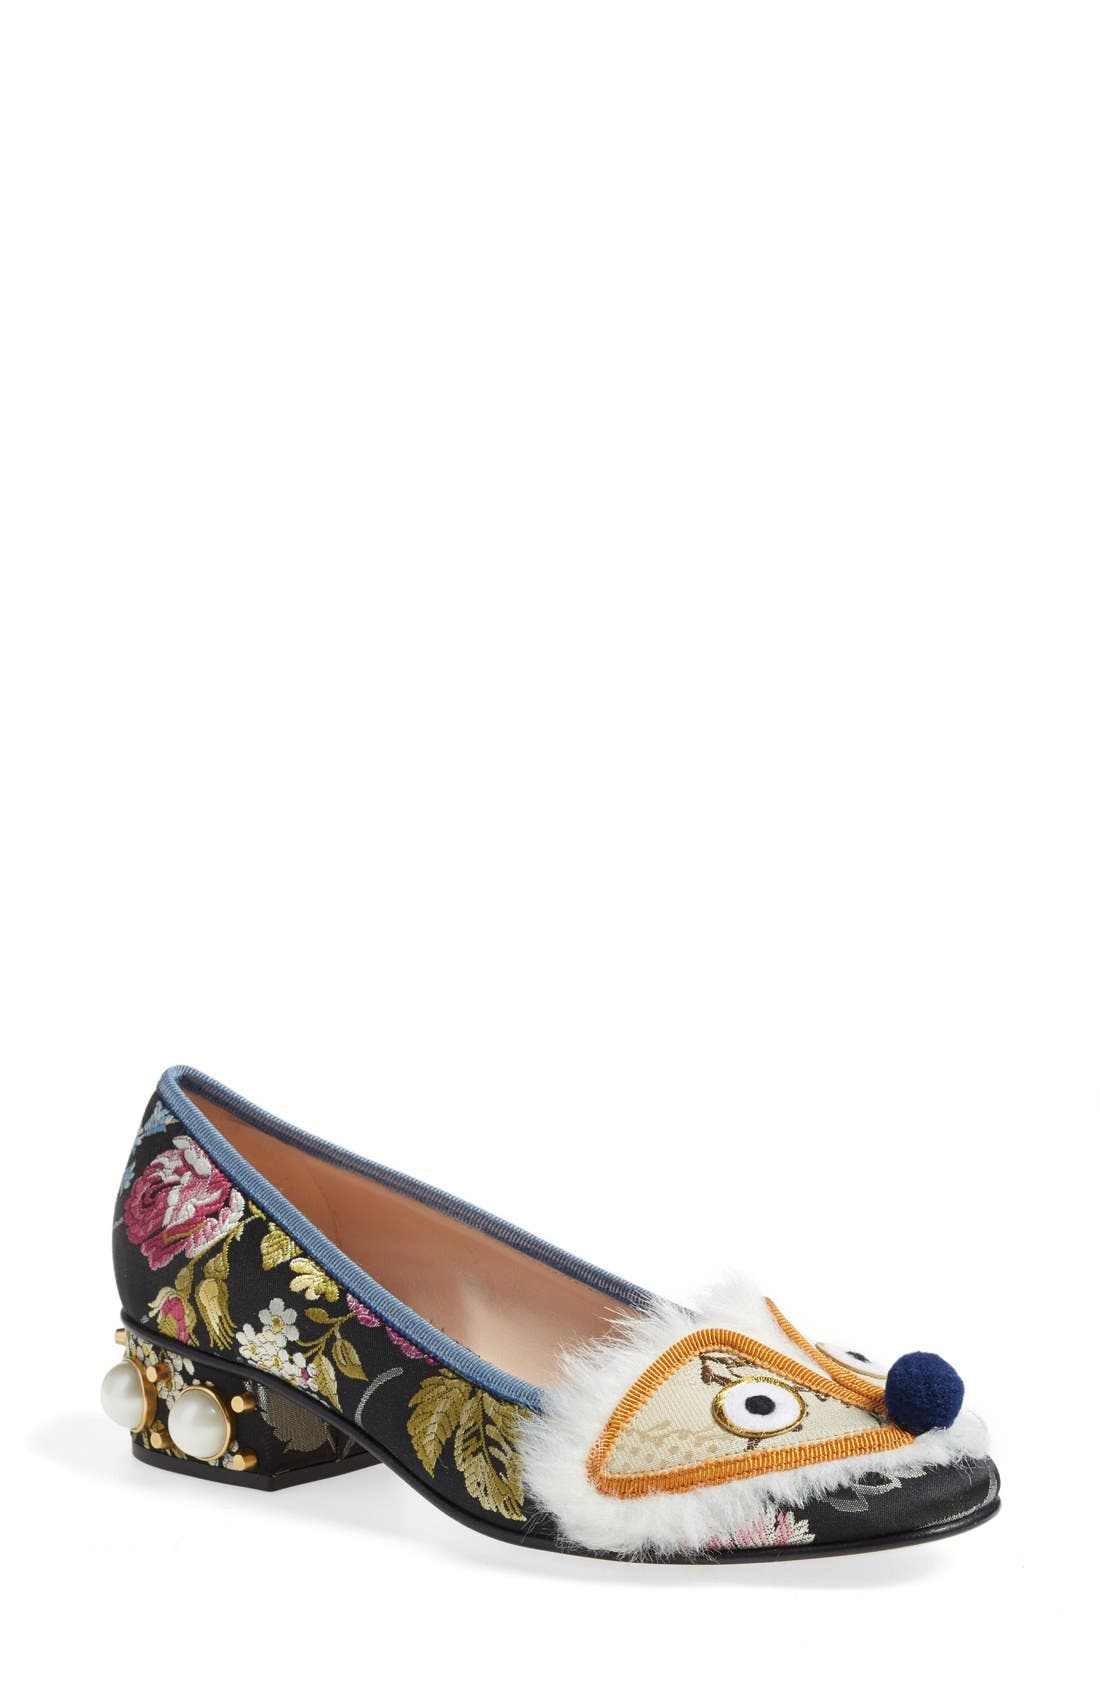 GUCCI 'Kimberly' Embellished Pump